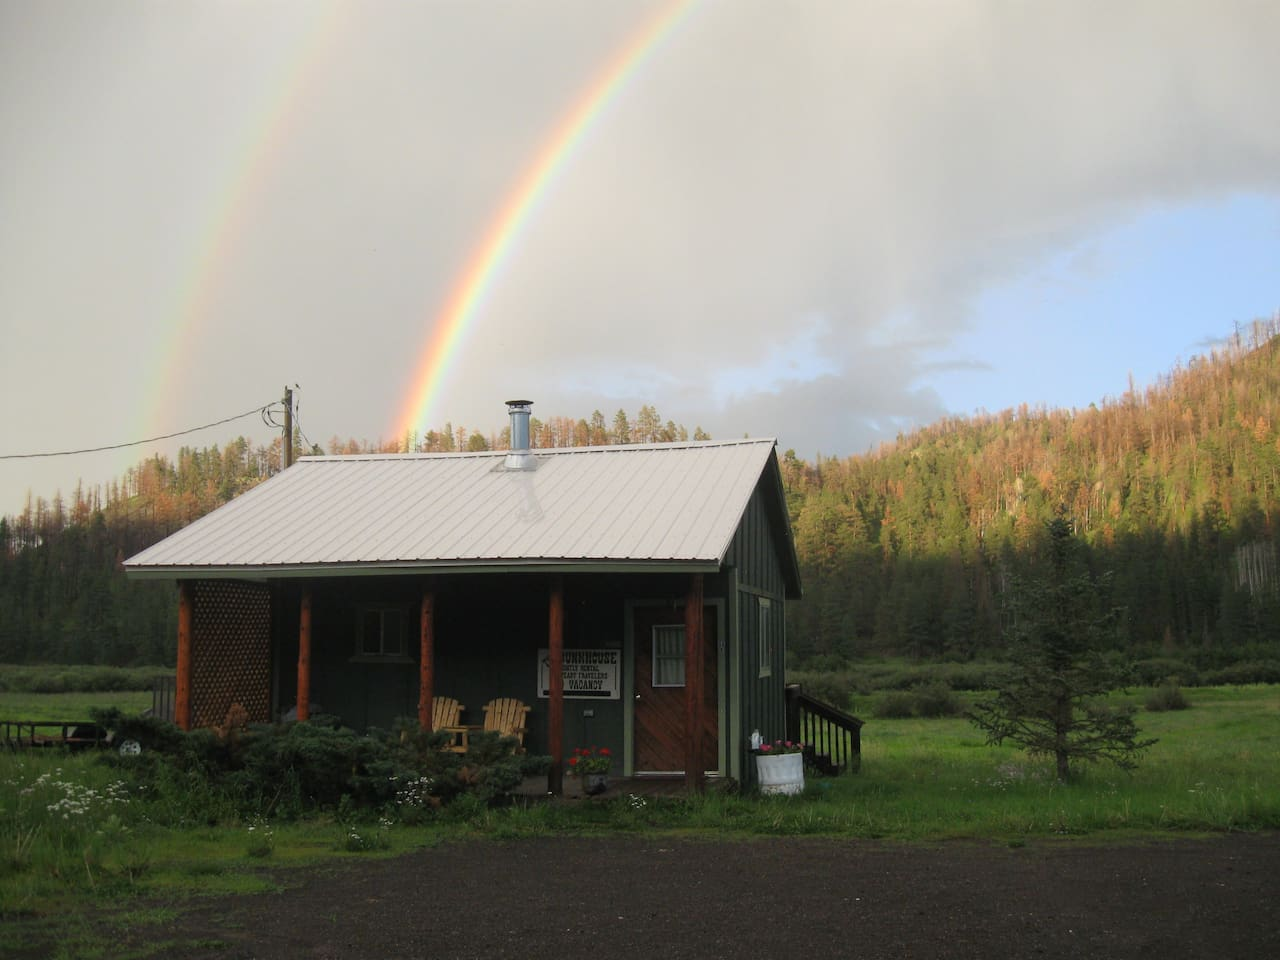 Pegnam's Bunkhouse...in the Greer village. Monsoons bring a double rainbow to this very special retreat.